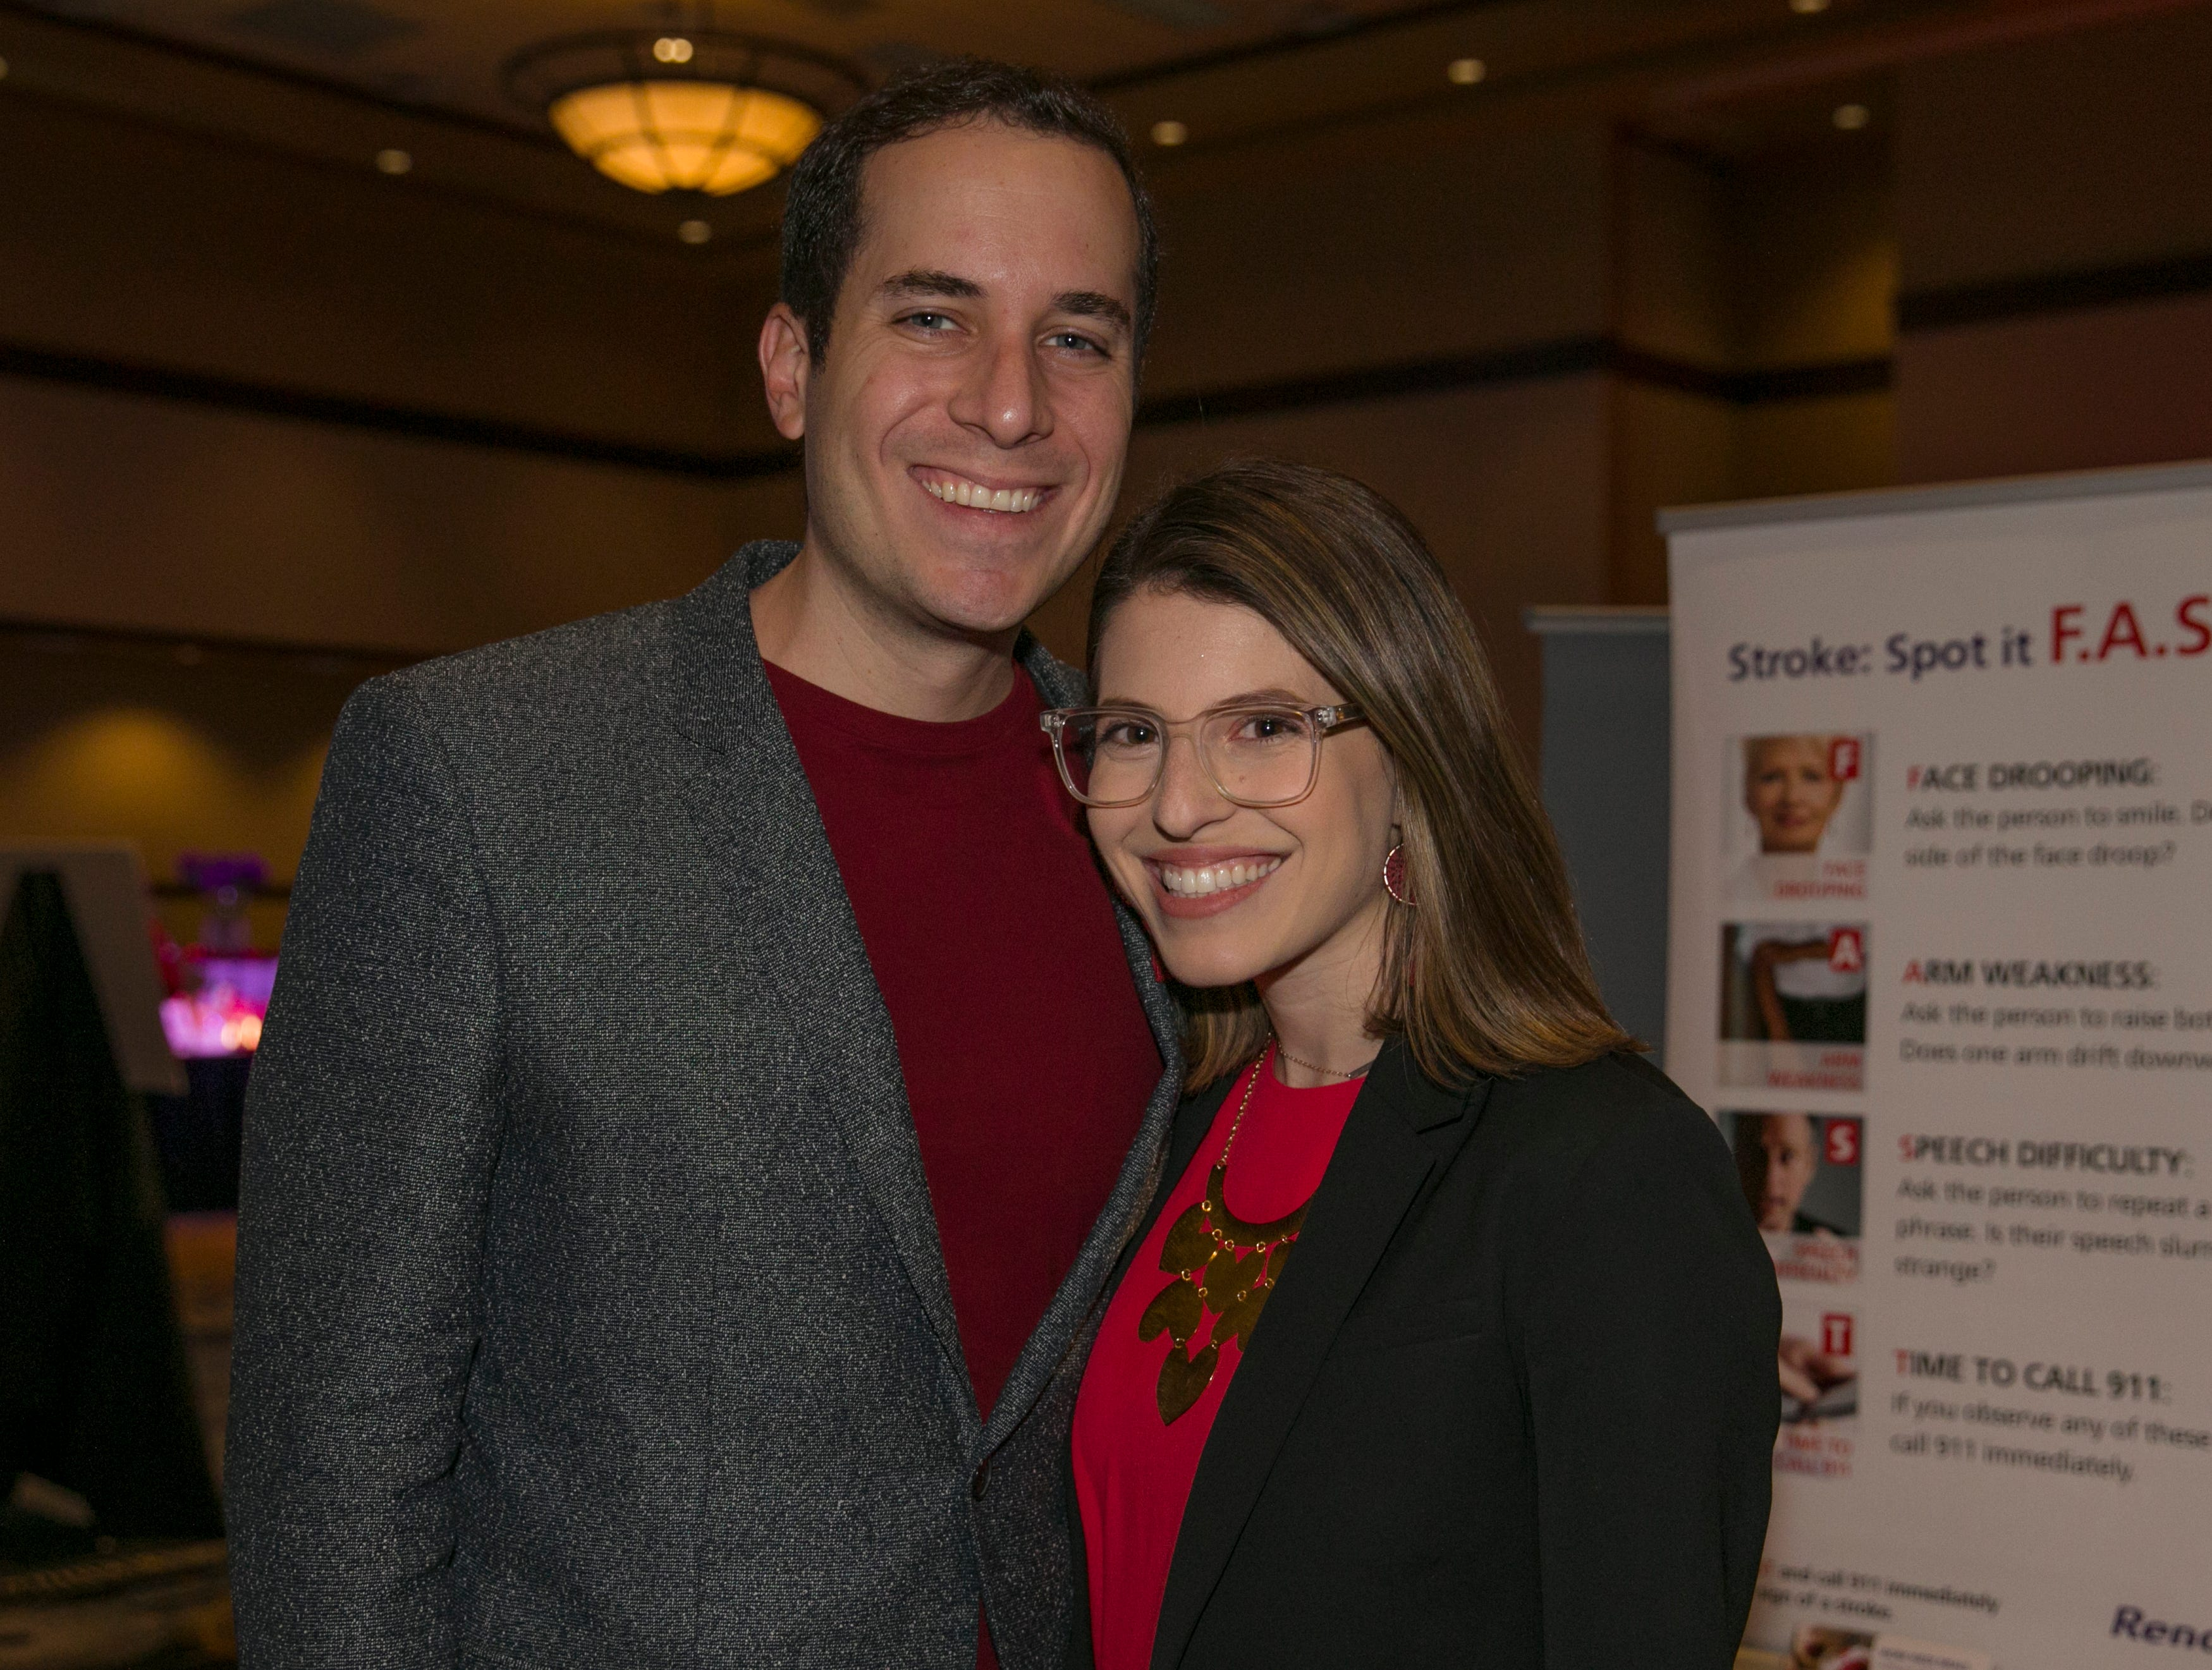 Adam Poler and keynote speaker Michelle Poler during the 15th Annual Go Red for Women Luncheon on Friday night,March 1, 2019 held at the downtown Reno Ballroom.